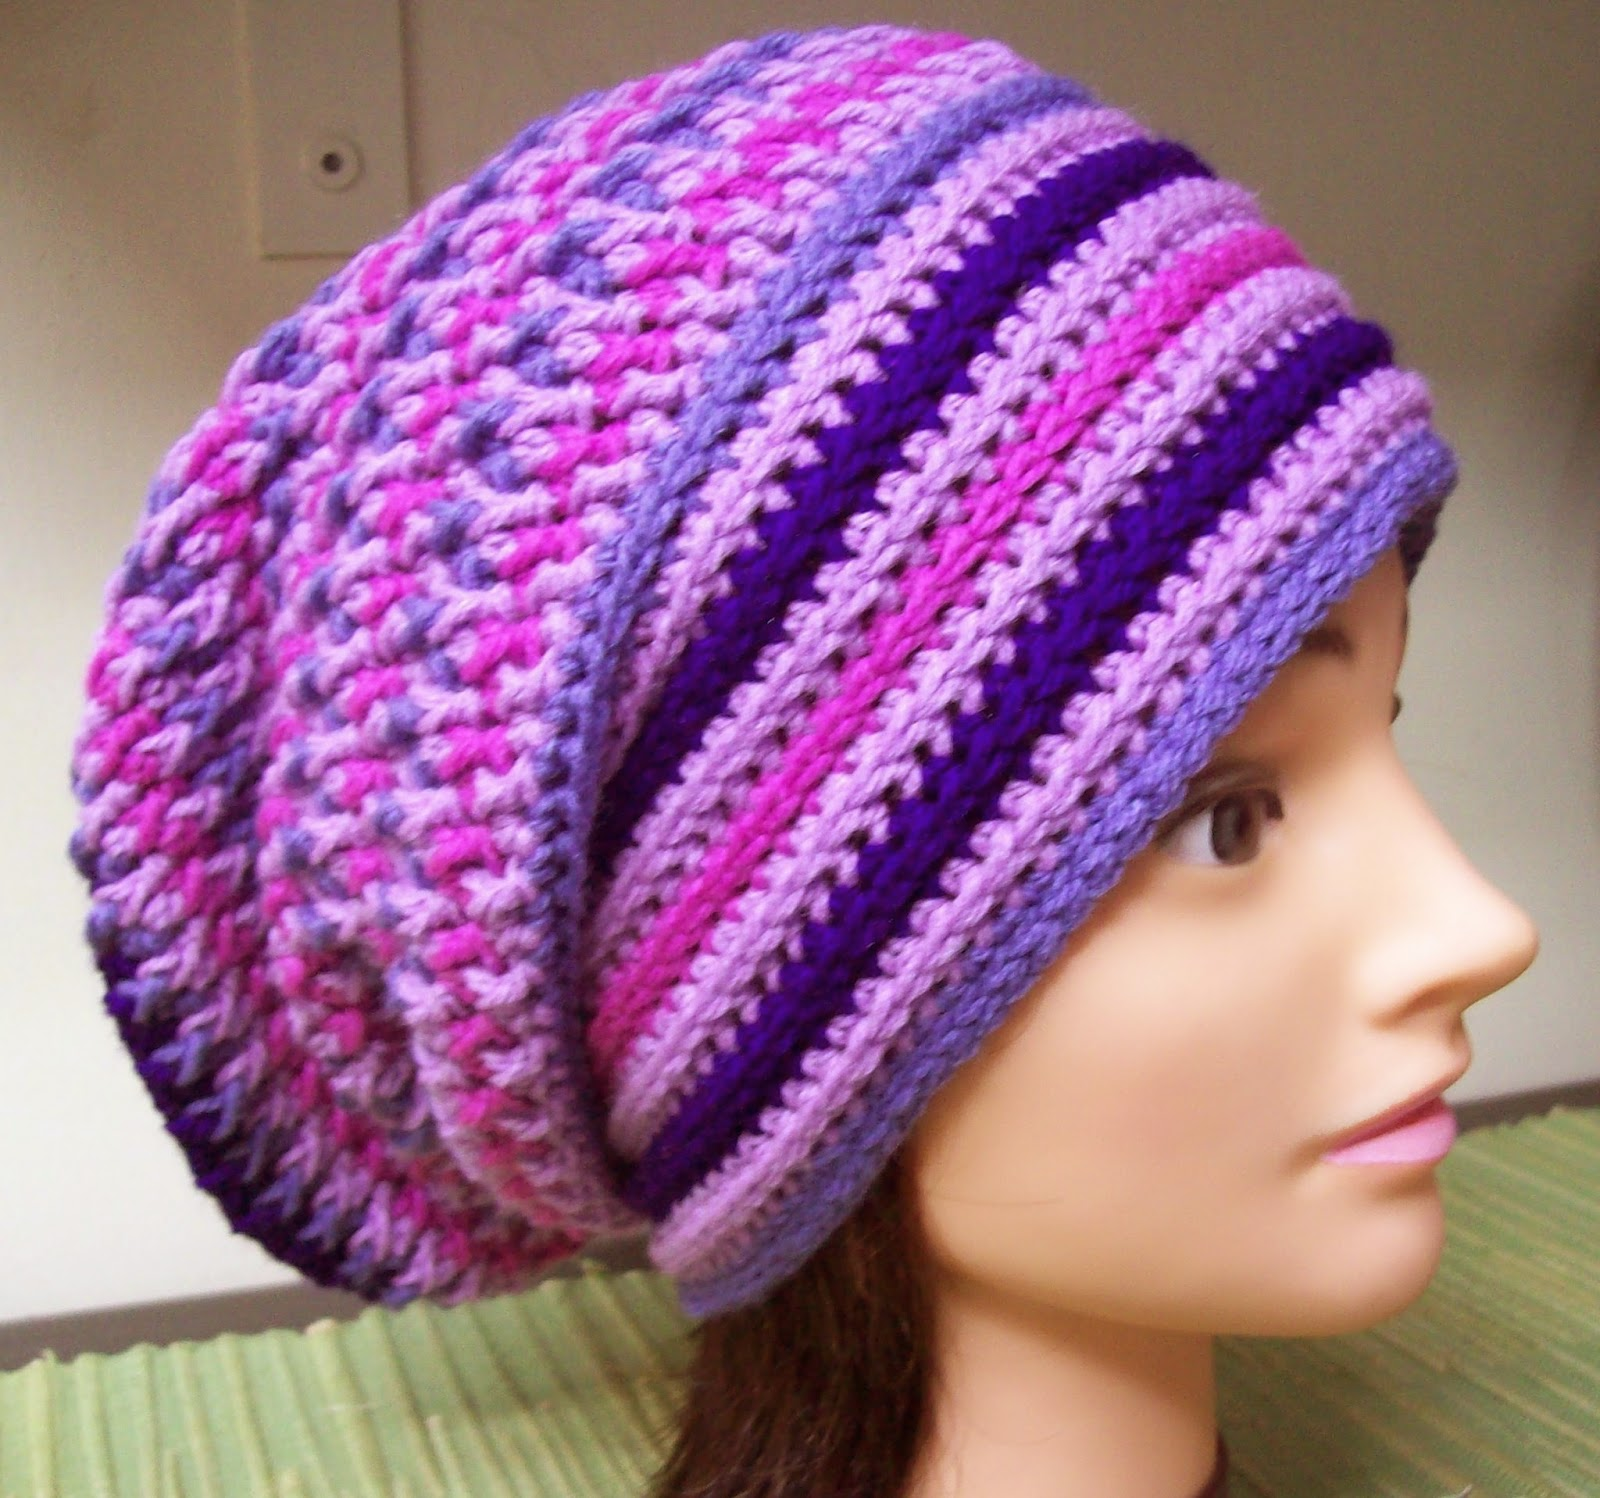 Free crochet patterns by cats rockin crochet two faces free crochet hat patterns bankloansurffo Image collections